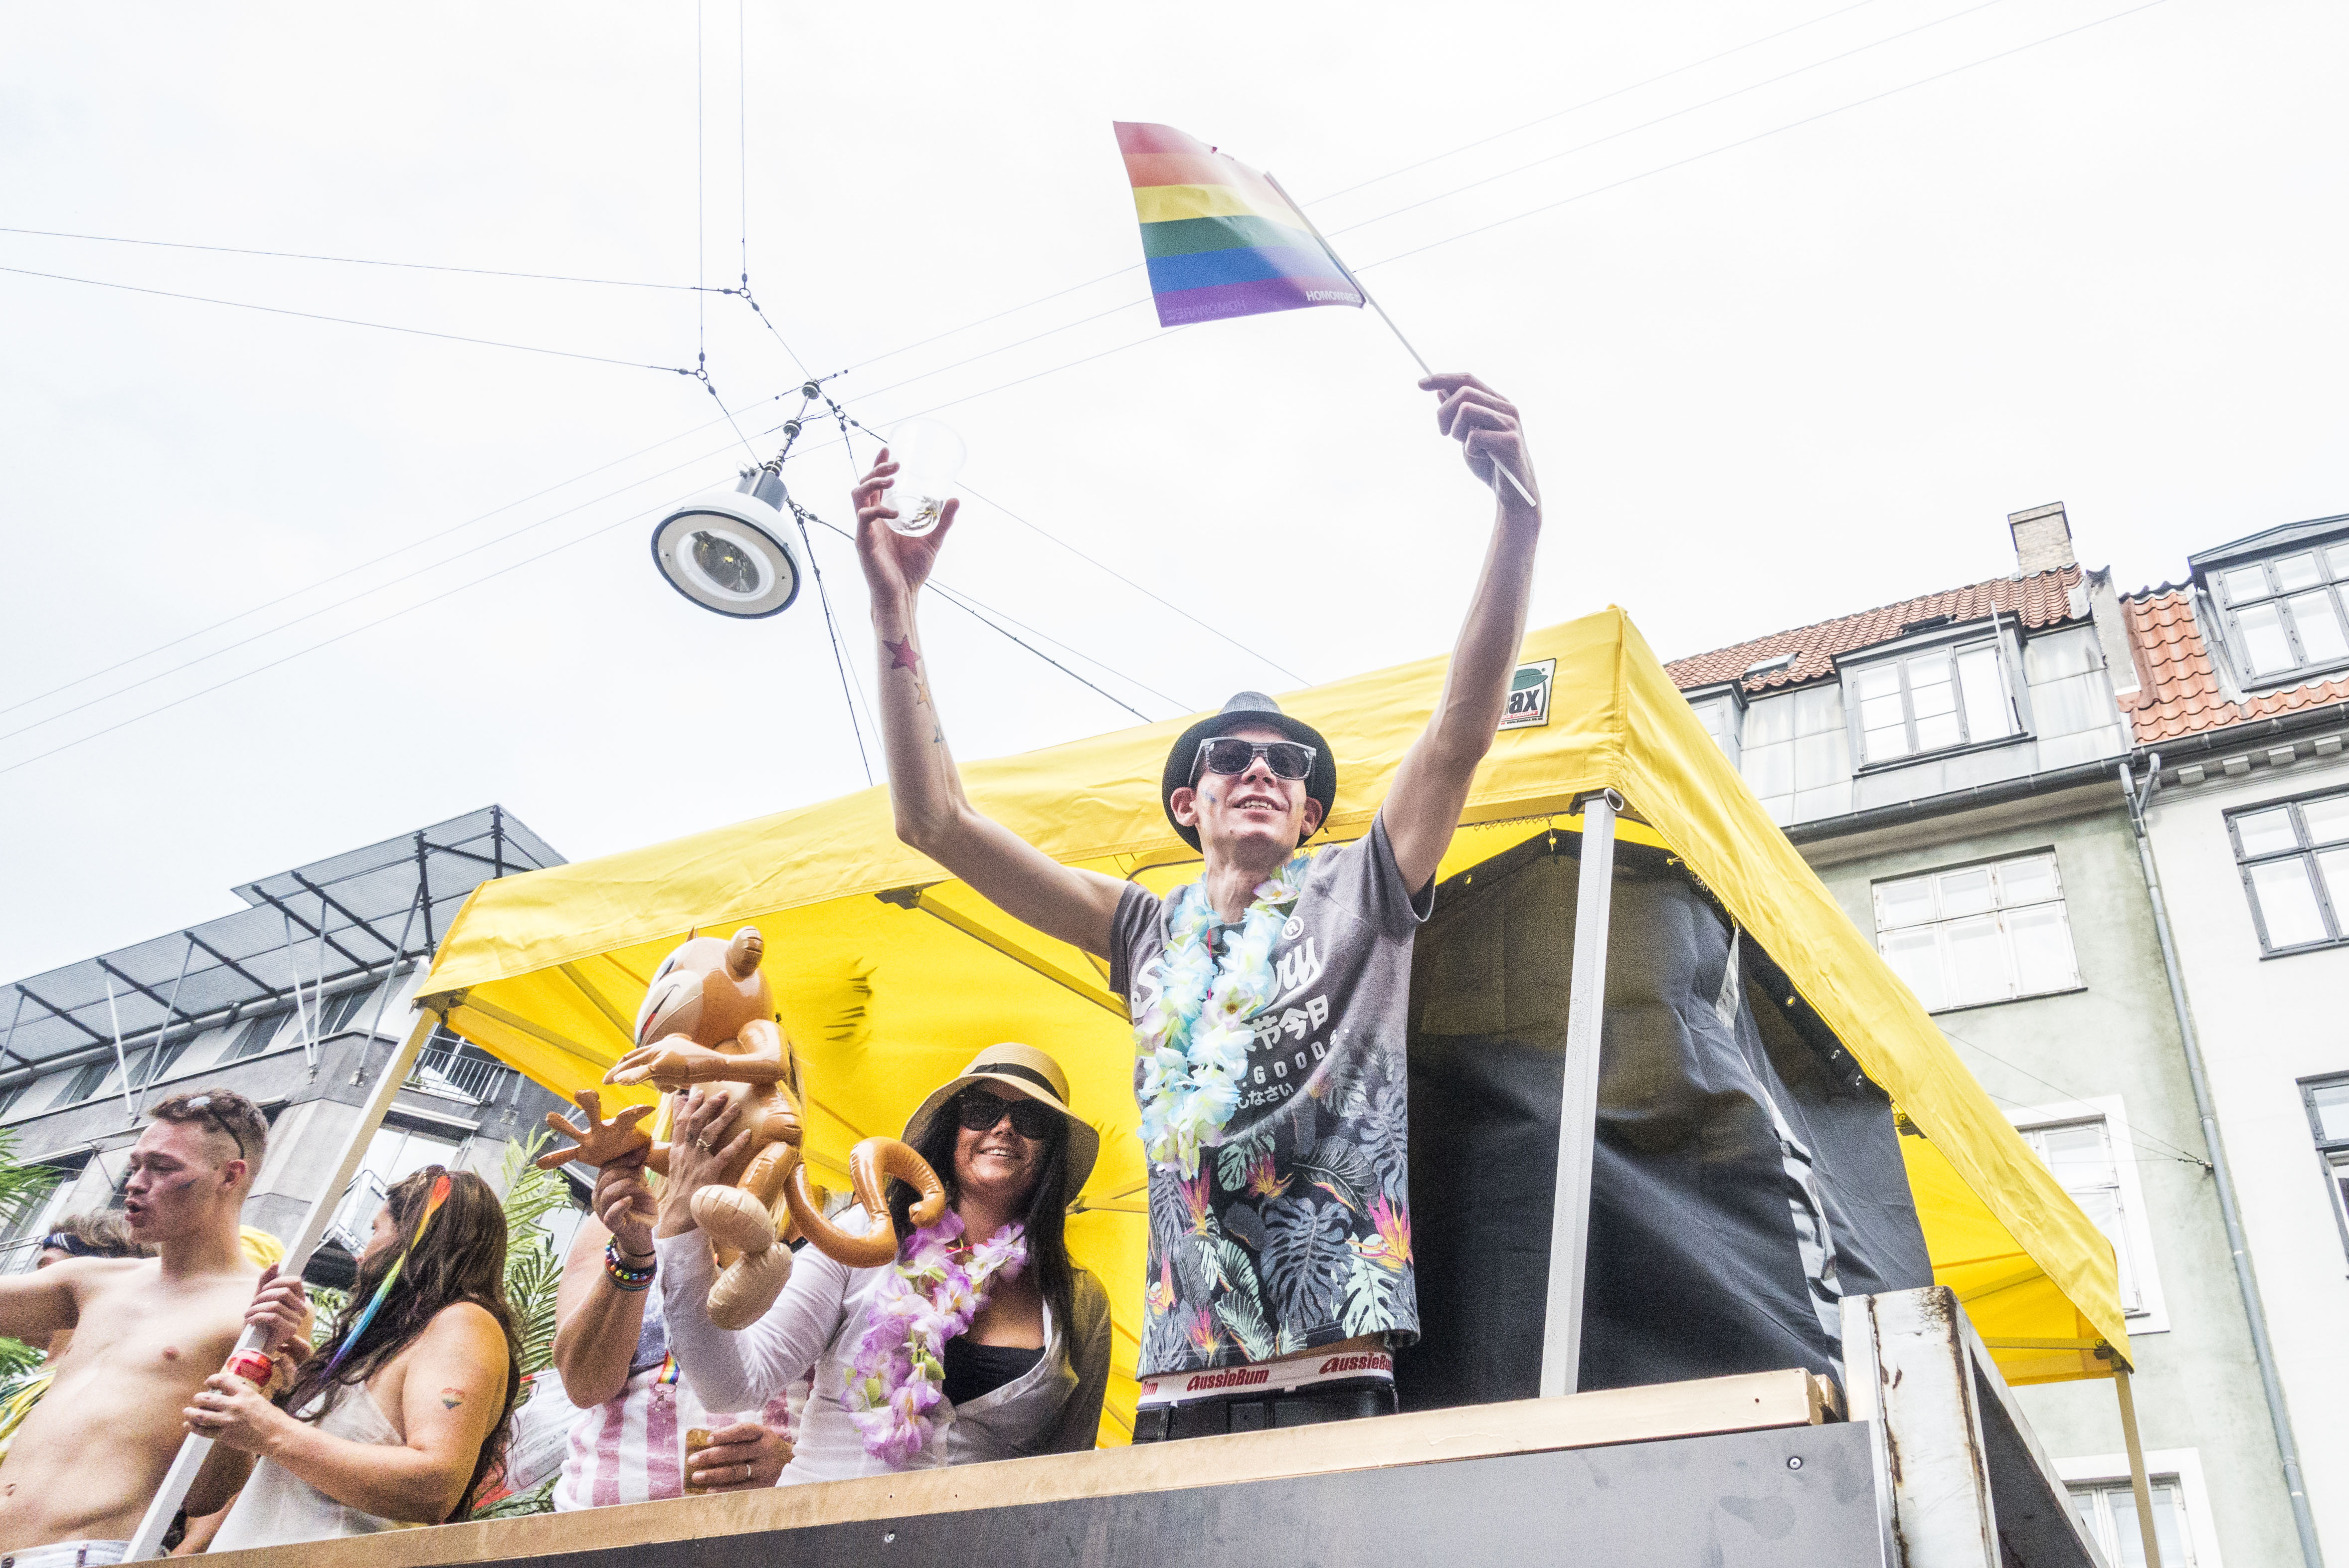 CphPride2016_HelenaLundquist_blog_26